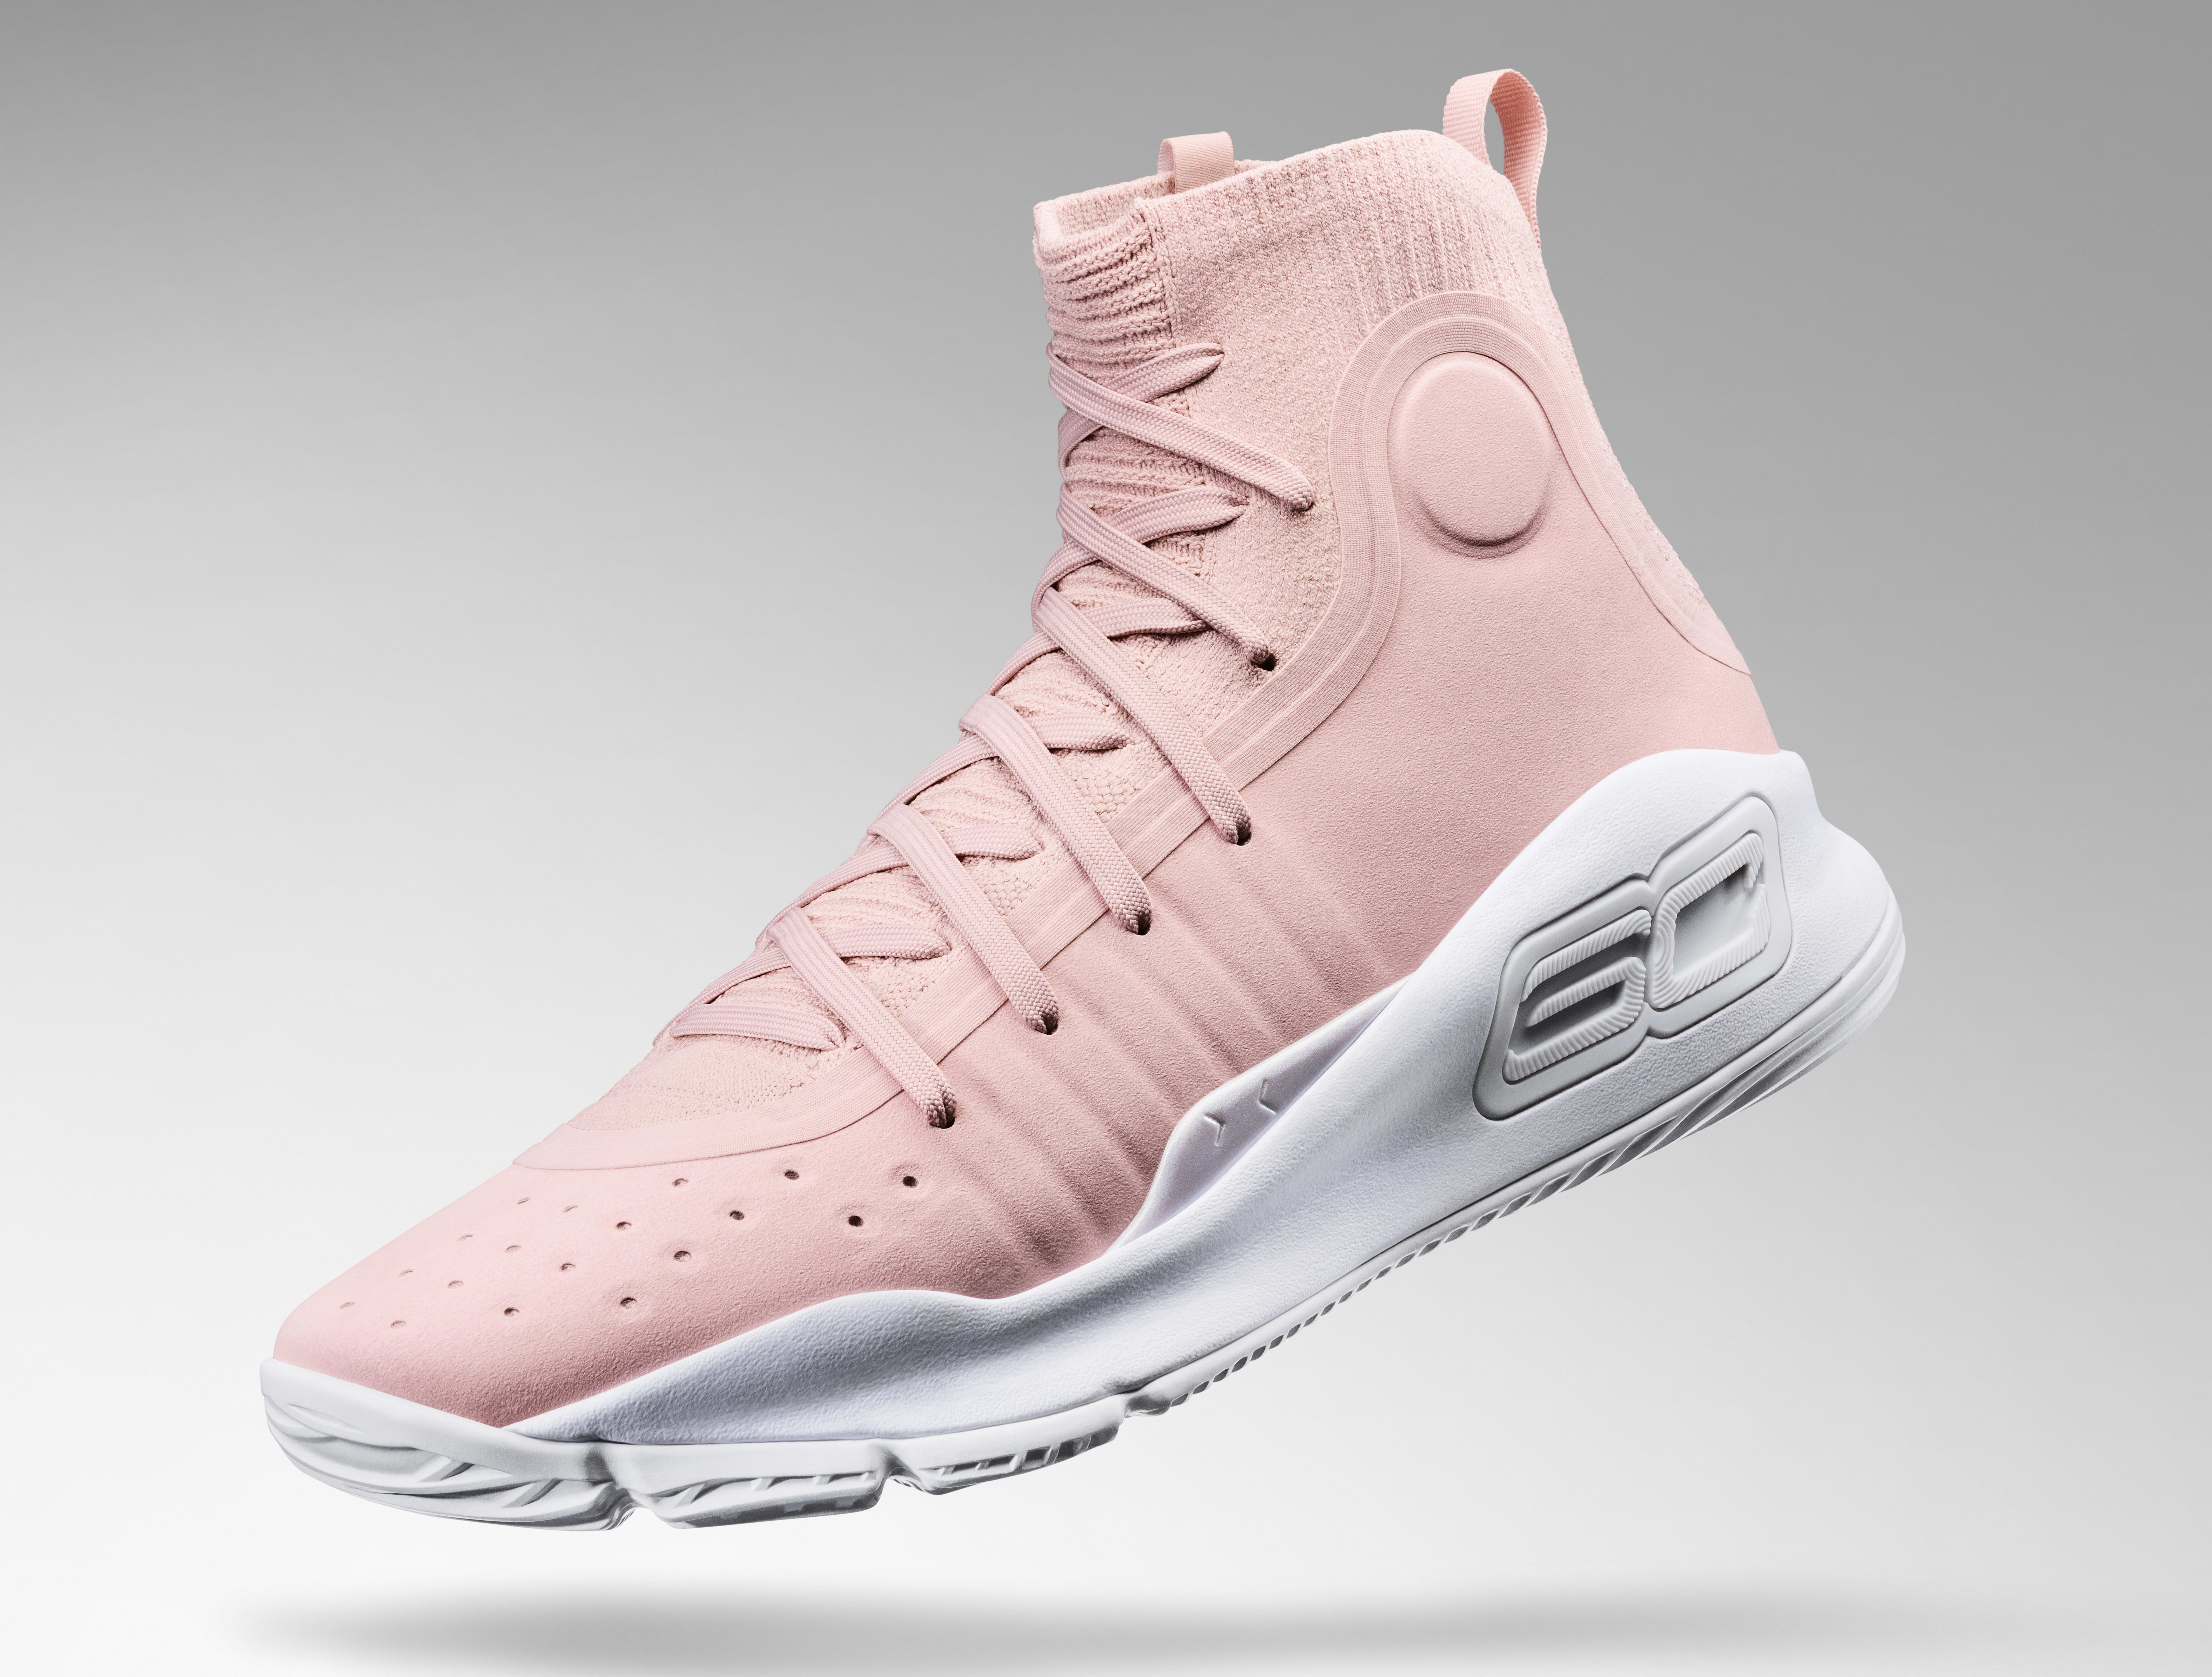 Under Armour Curry 4 'Flushed Pink' 4